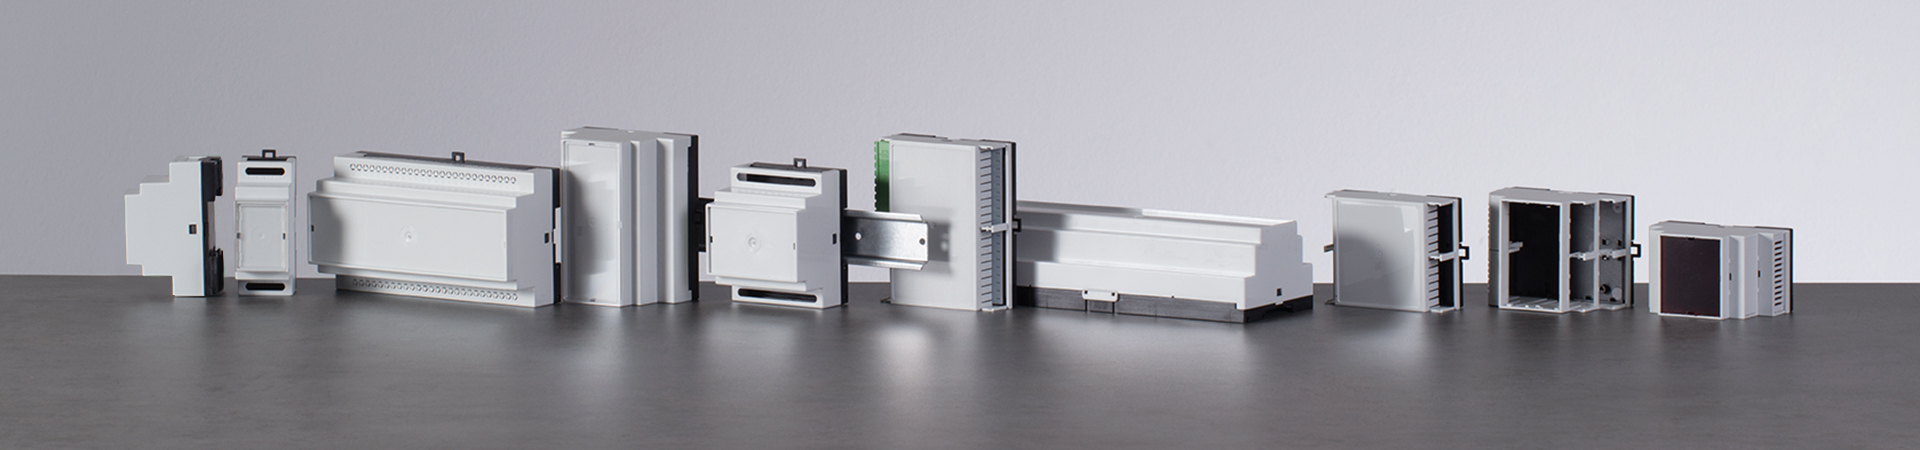 How to specify DIN rail enclosures?